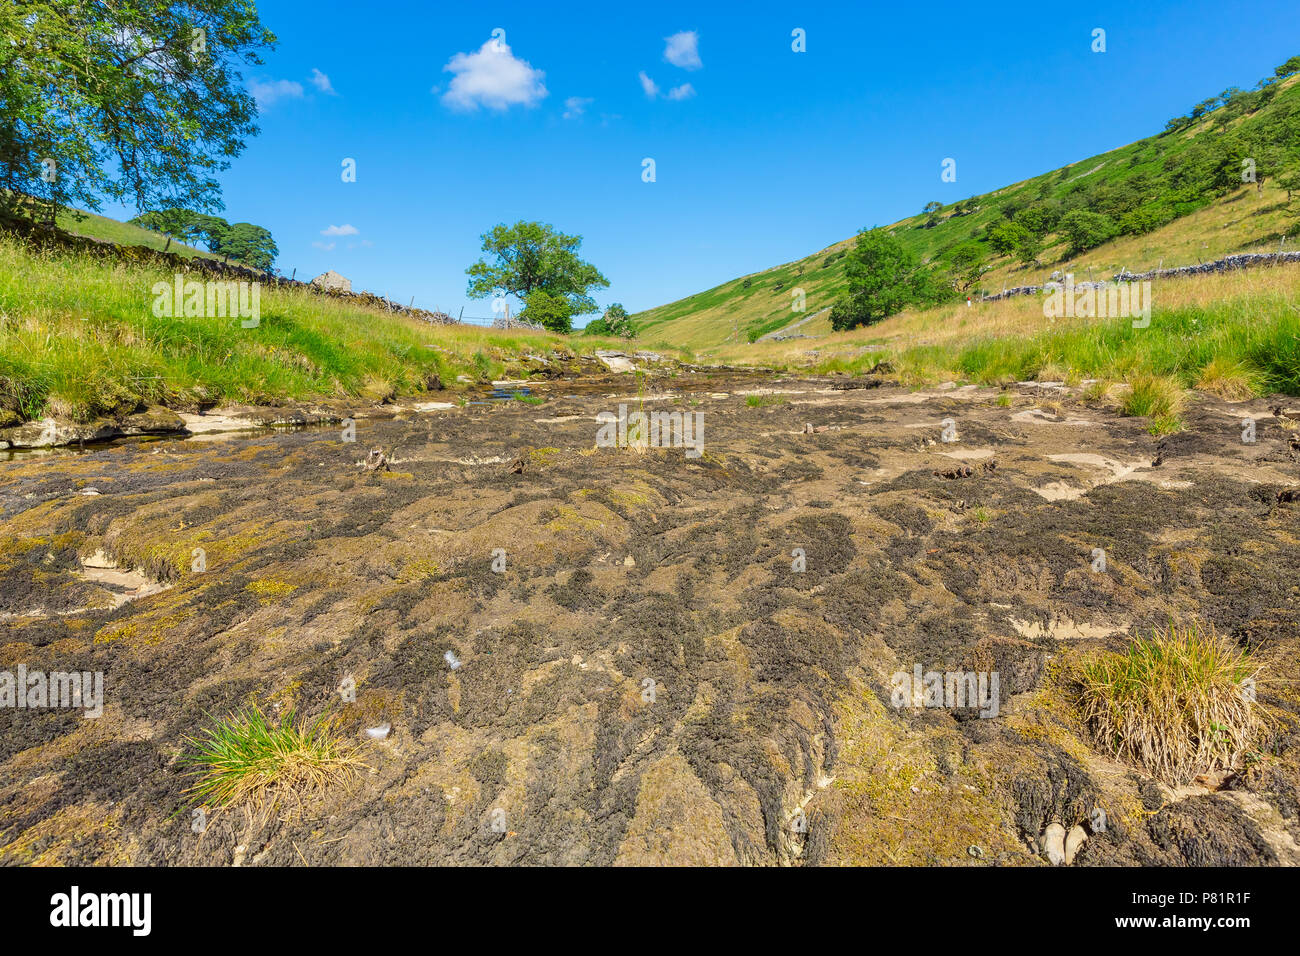 River Wharfe at Hubberholme, Near Kettlewell in the Yorkshire Dales, England UK, almost dried up due to continued heat wave and lack of rain. - Stock Image